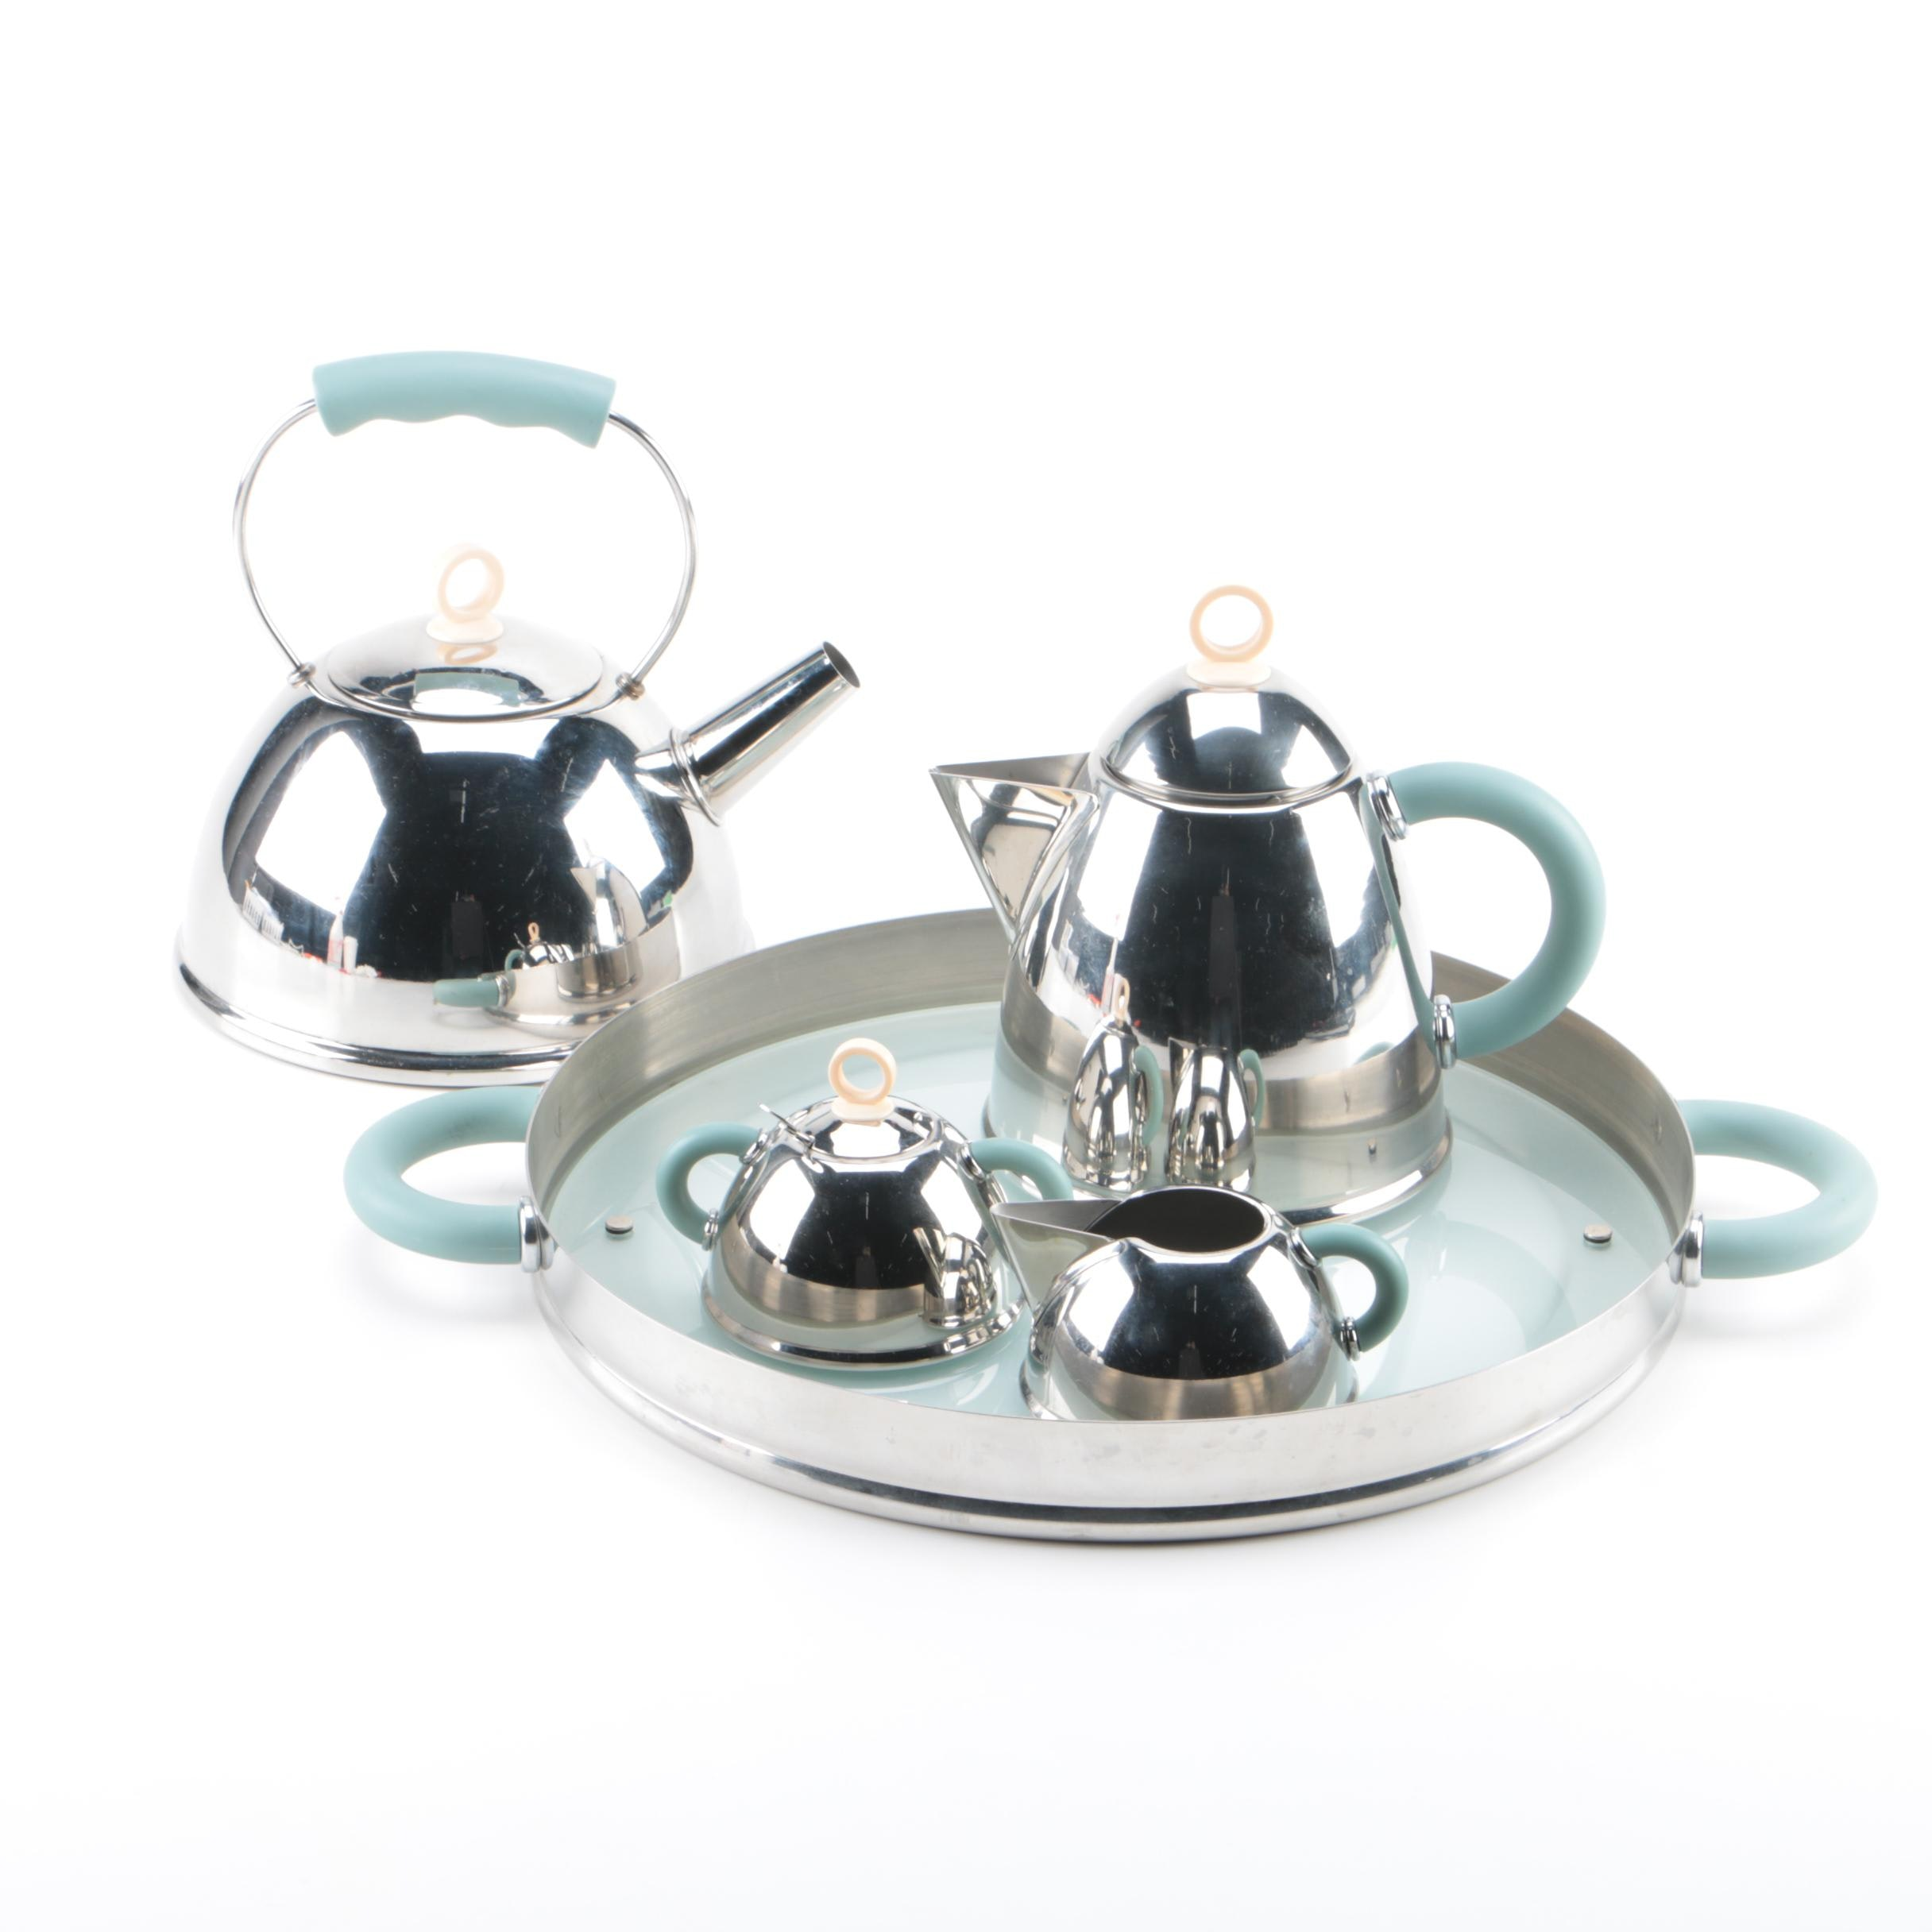 Taiwanese Stainless Tea Set with Kettle